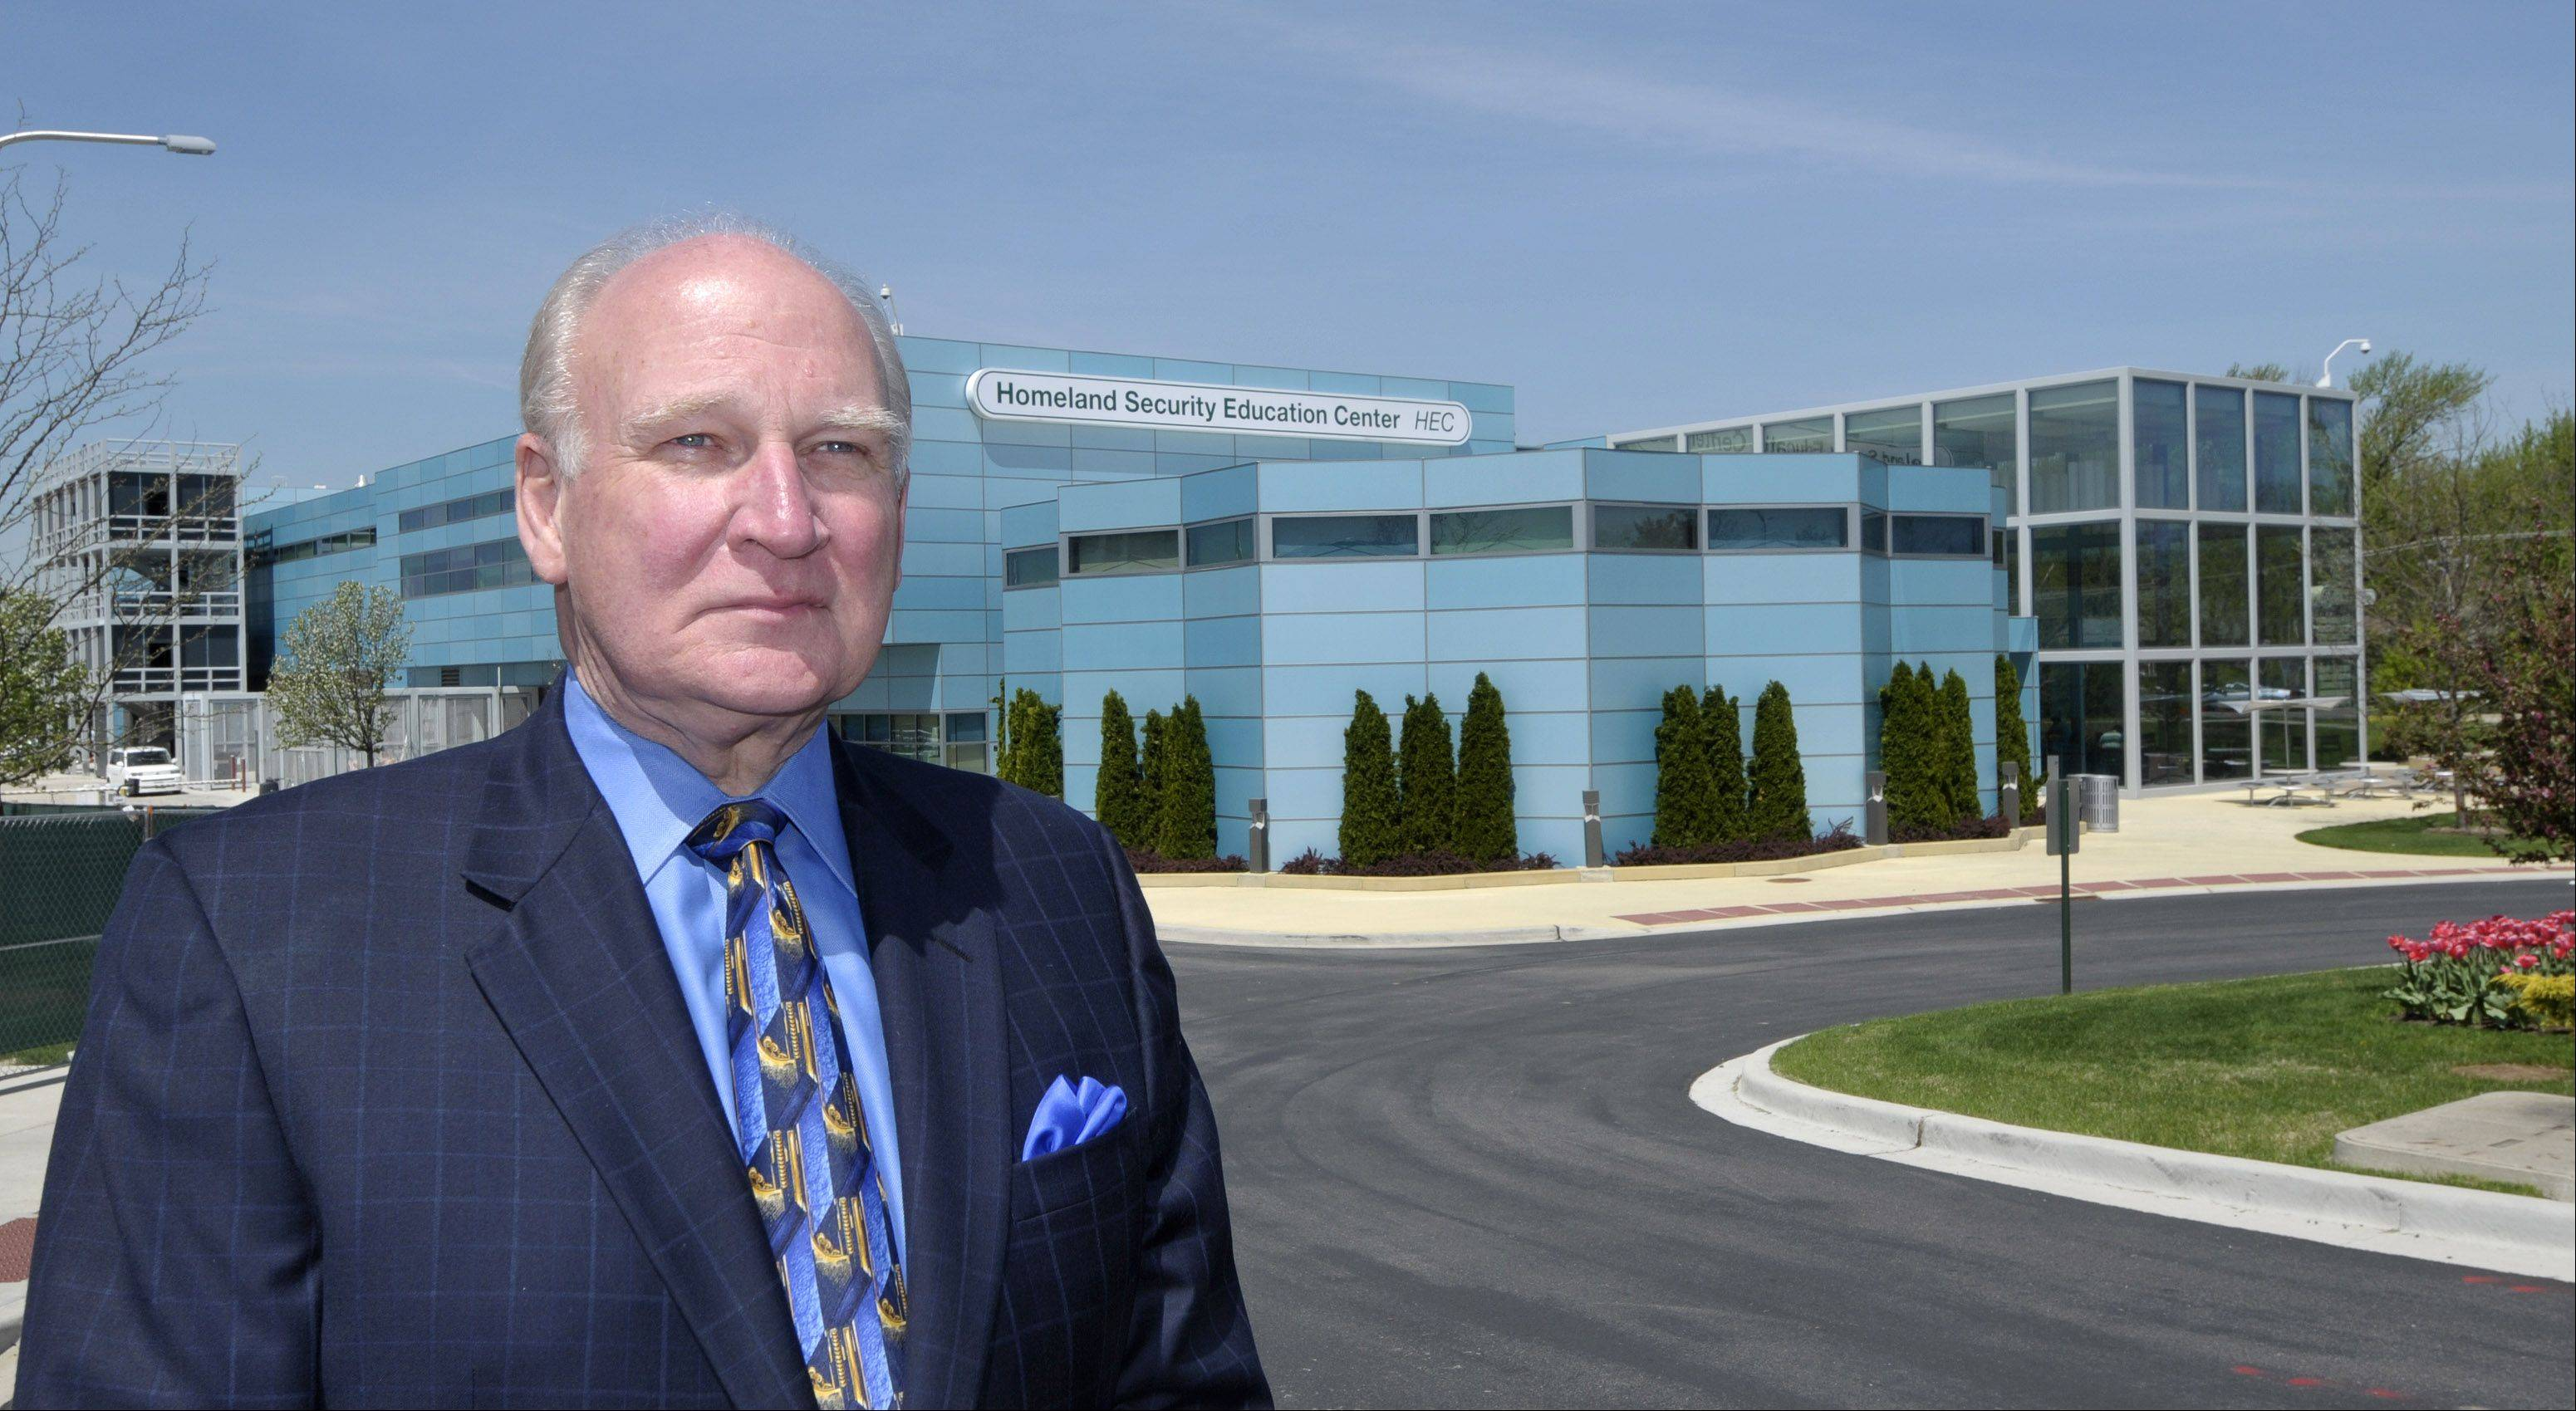 The Homeland Security Education Center at the College of DuPage will be named in honor of college President Robert Breuder upon his retirement, according to a resolution passed Tuesday by the outgoing board of trustees.